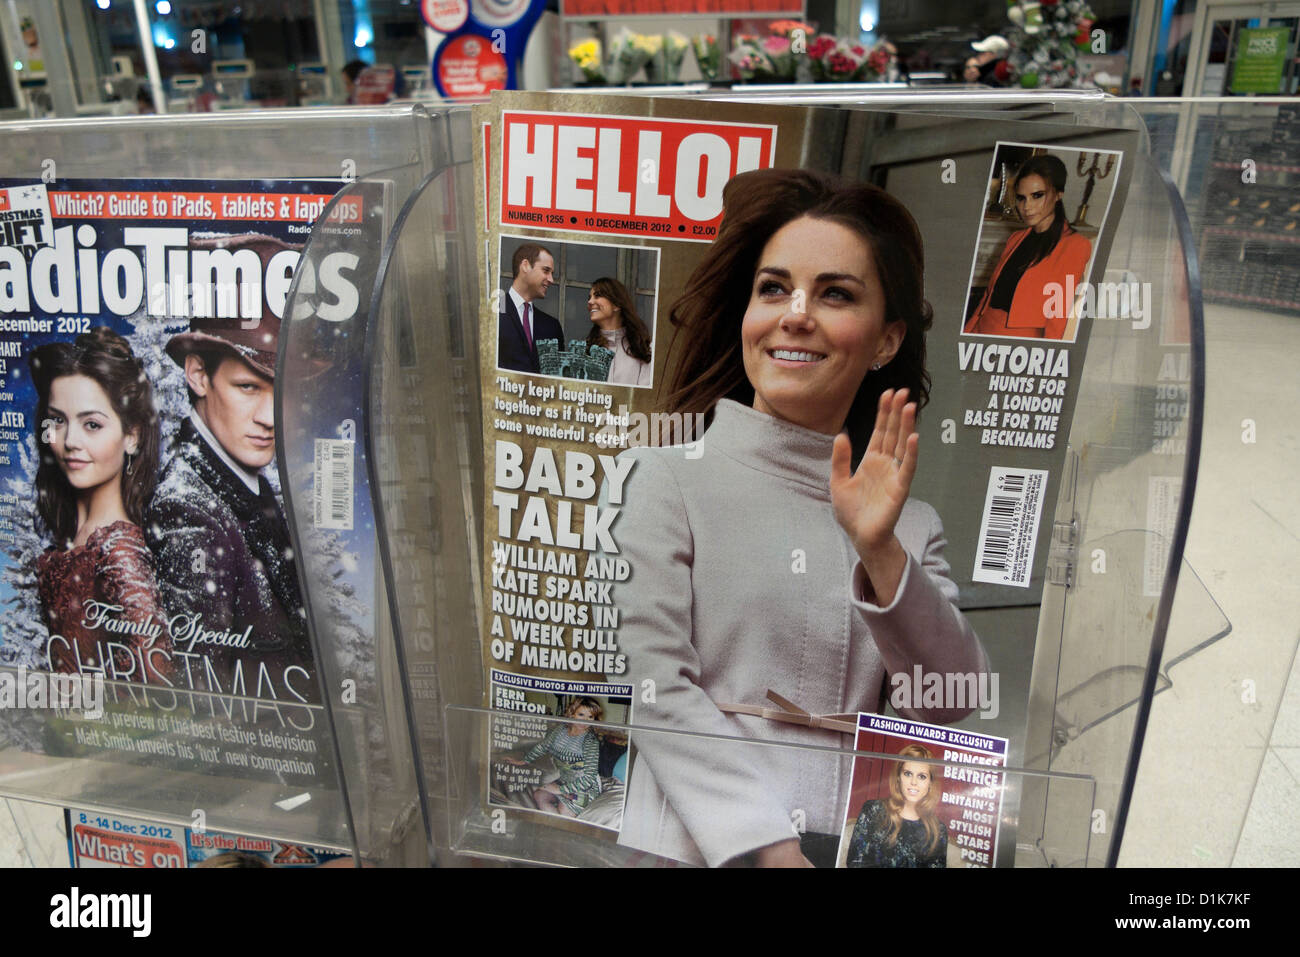 Pregnant Kate Middleton Duchess of Cambridge on the front cover of Hello Magazine December 2012 on newsstand in - Stock Image